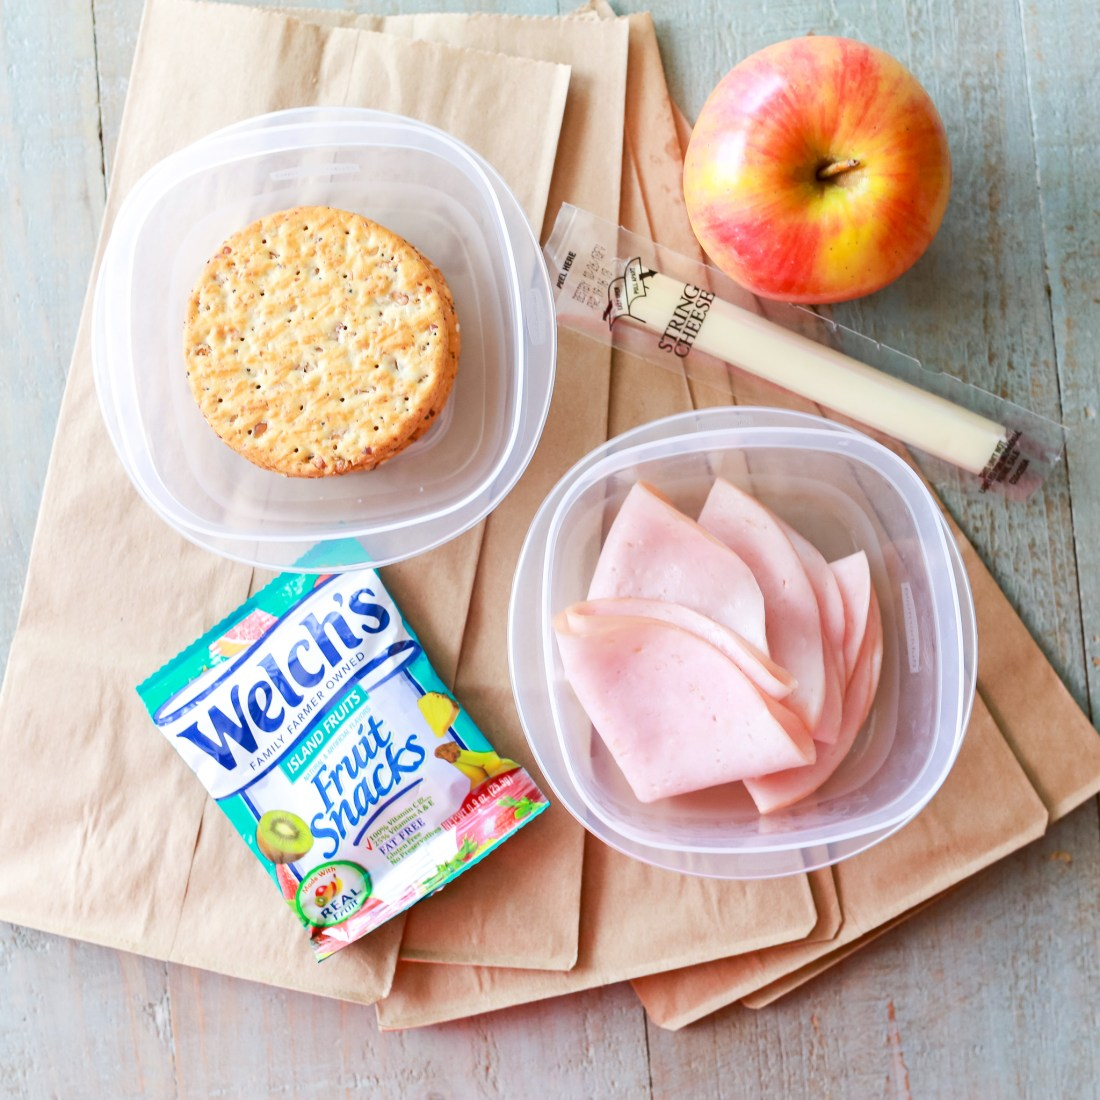 Back to school Lunch Ideas besides sandwiches